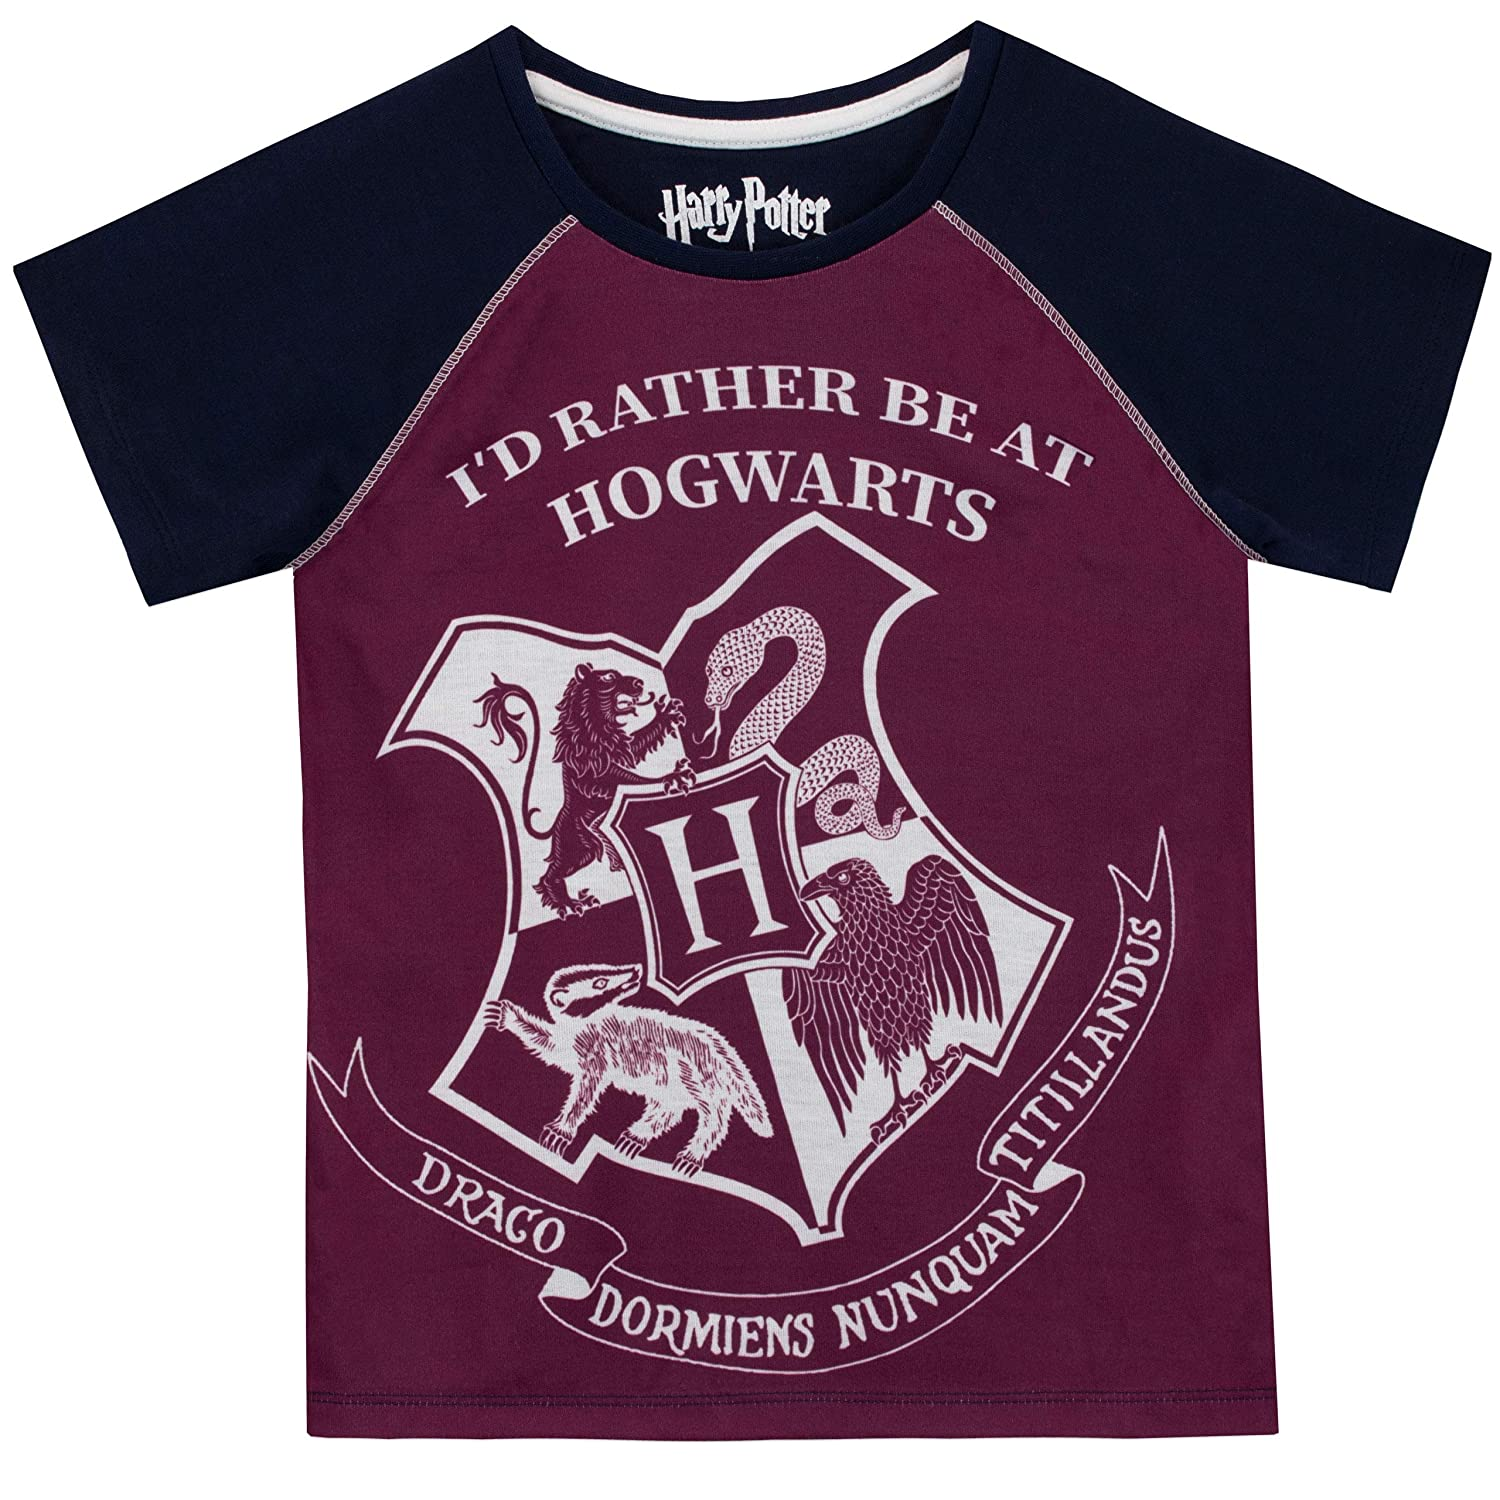 3d2dcdcf1 Amazon.com: HARRY POTTER Girls' Hogwarts Pajamas: Clothing